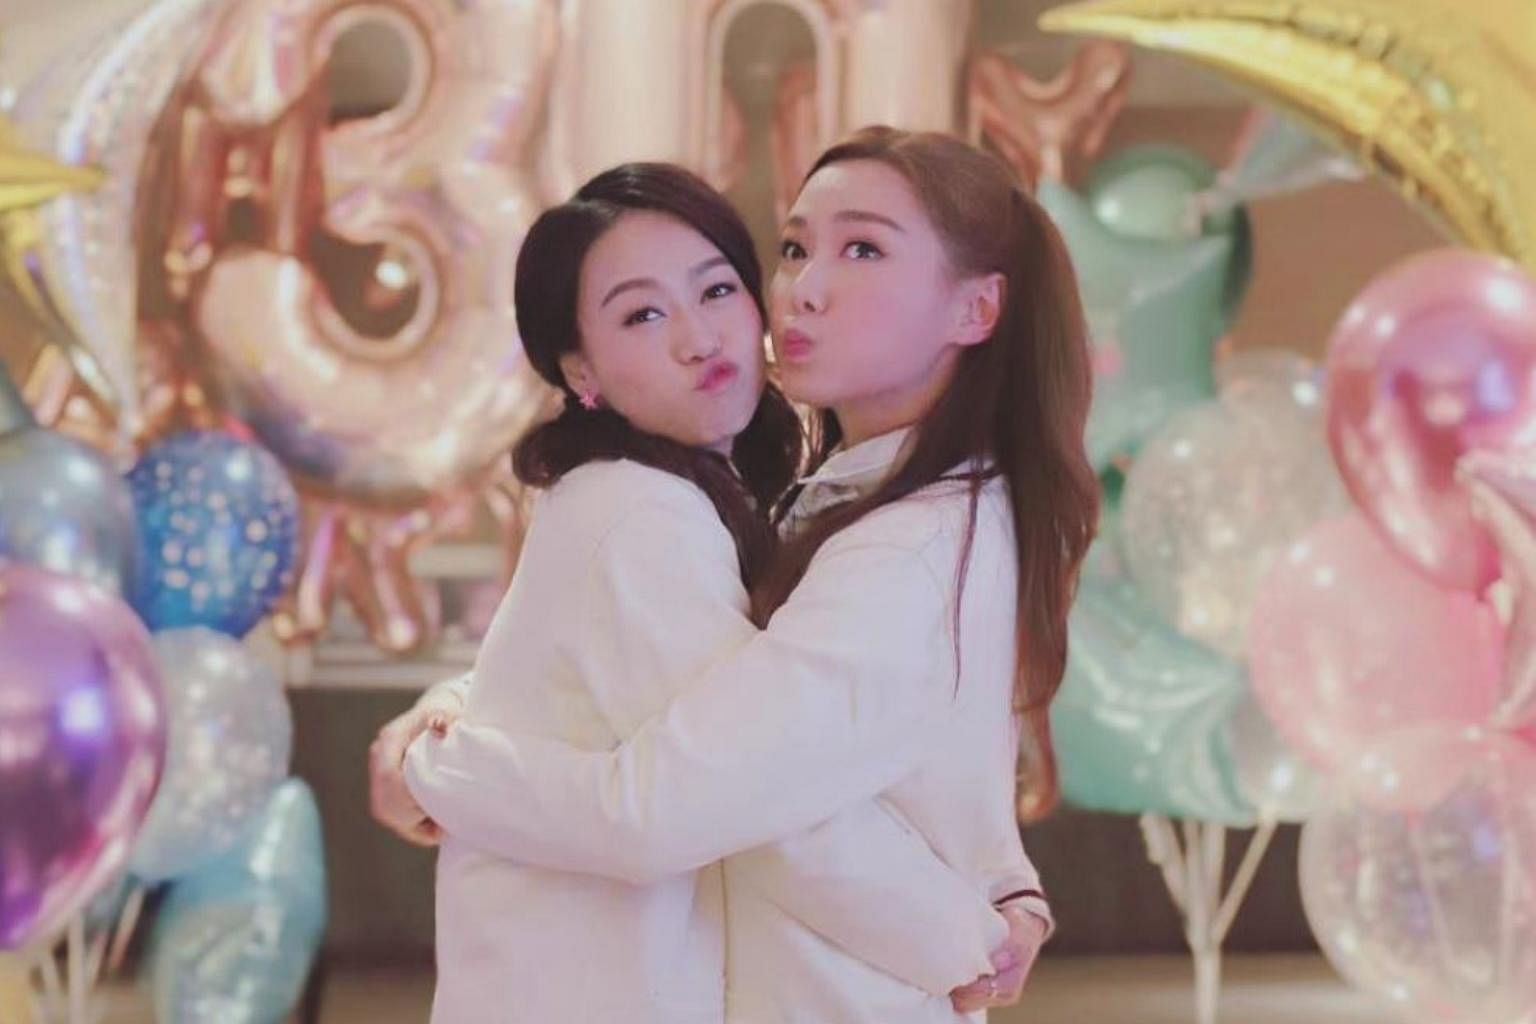 Roxanne Tong Who Replaces Jacqueline Wong In Tvb Drama Has To Shed 4 5kg Entertainment News Top Stories The Straits Times